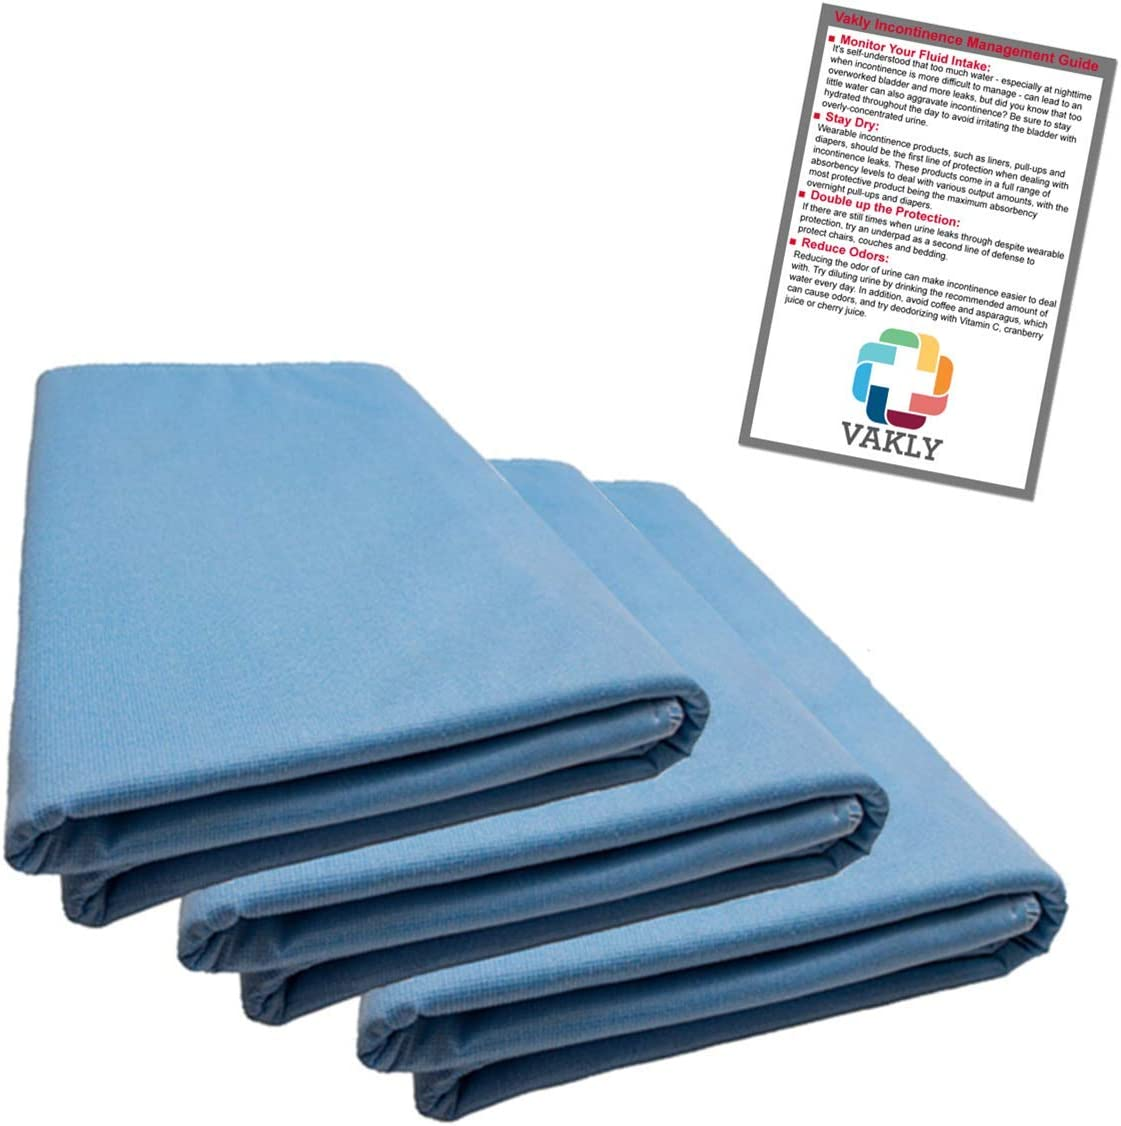 """36"""" x 54"""" Reusable Underpad with 4-Layer Protection (3 Pack) + Vakly Incontinence Guide"""